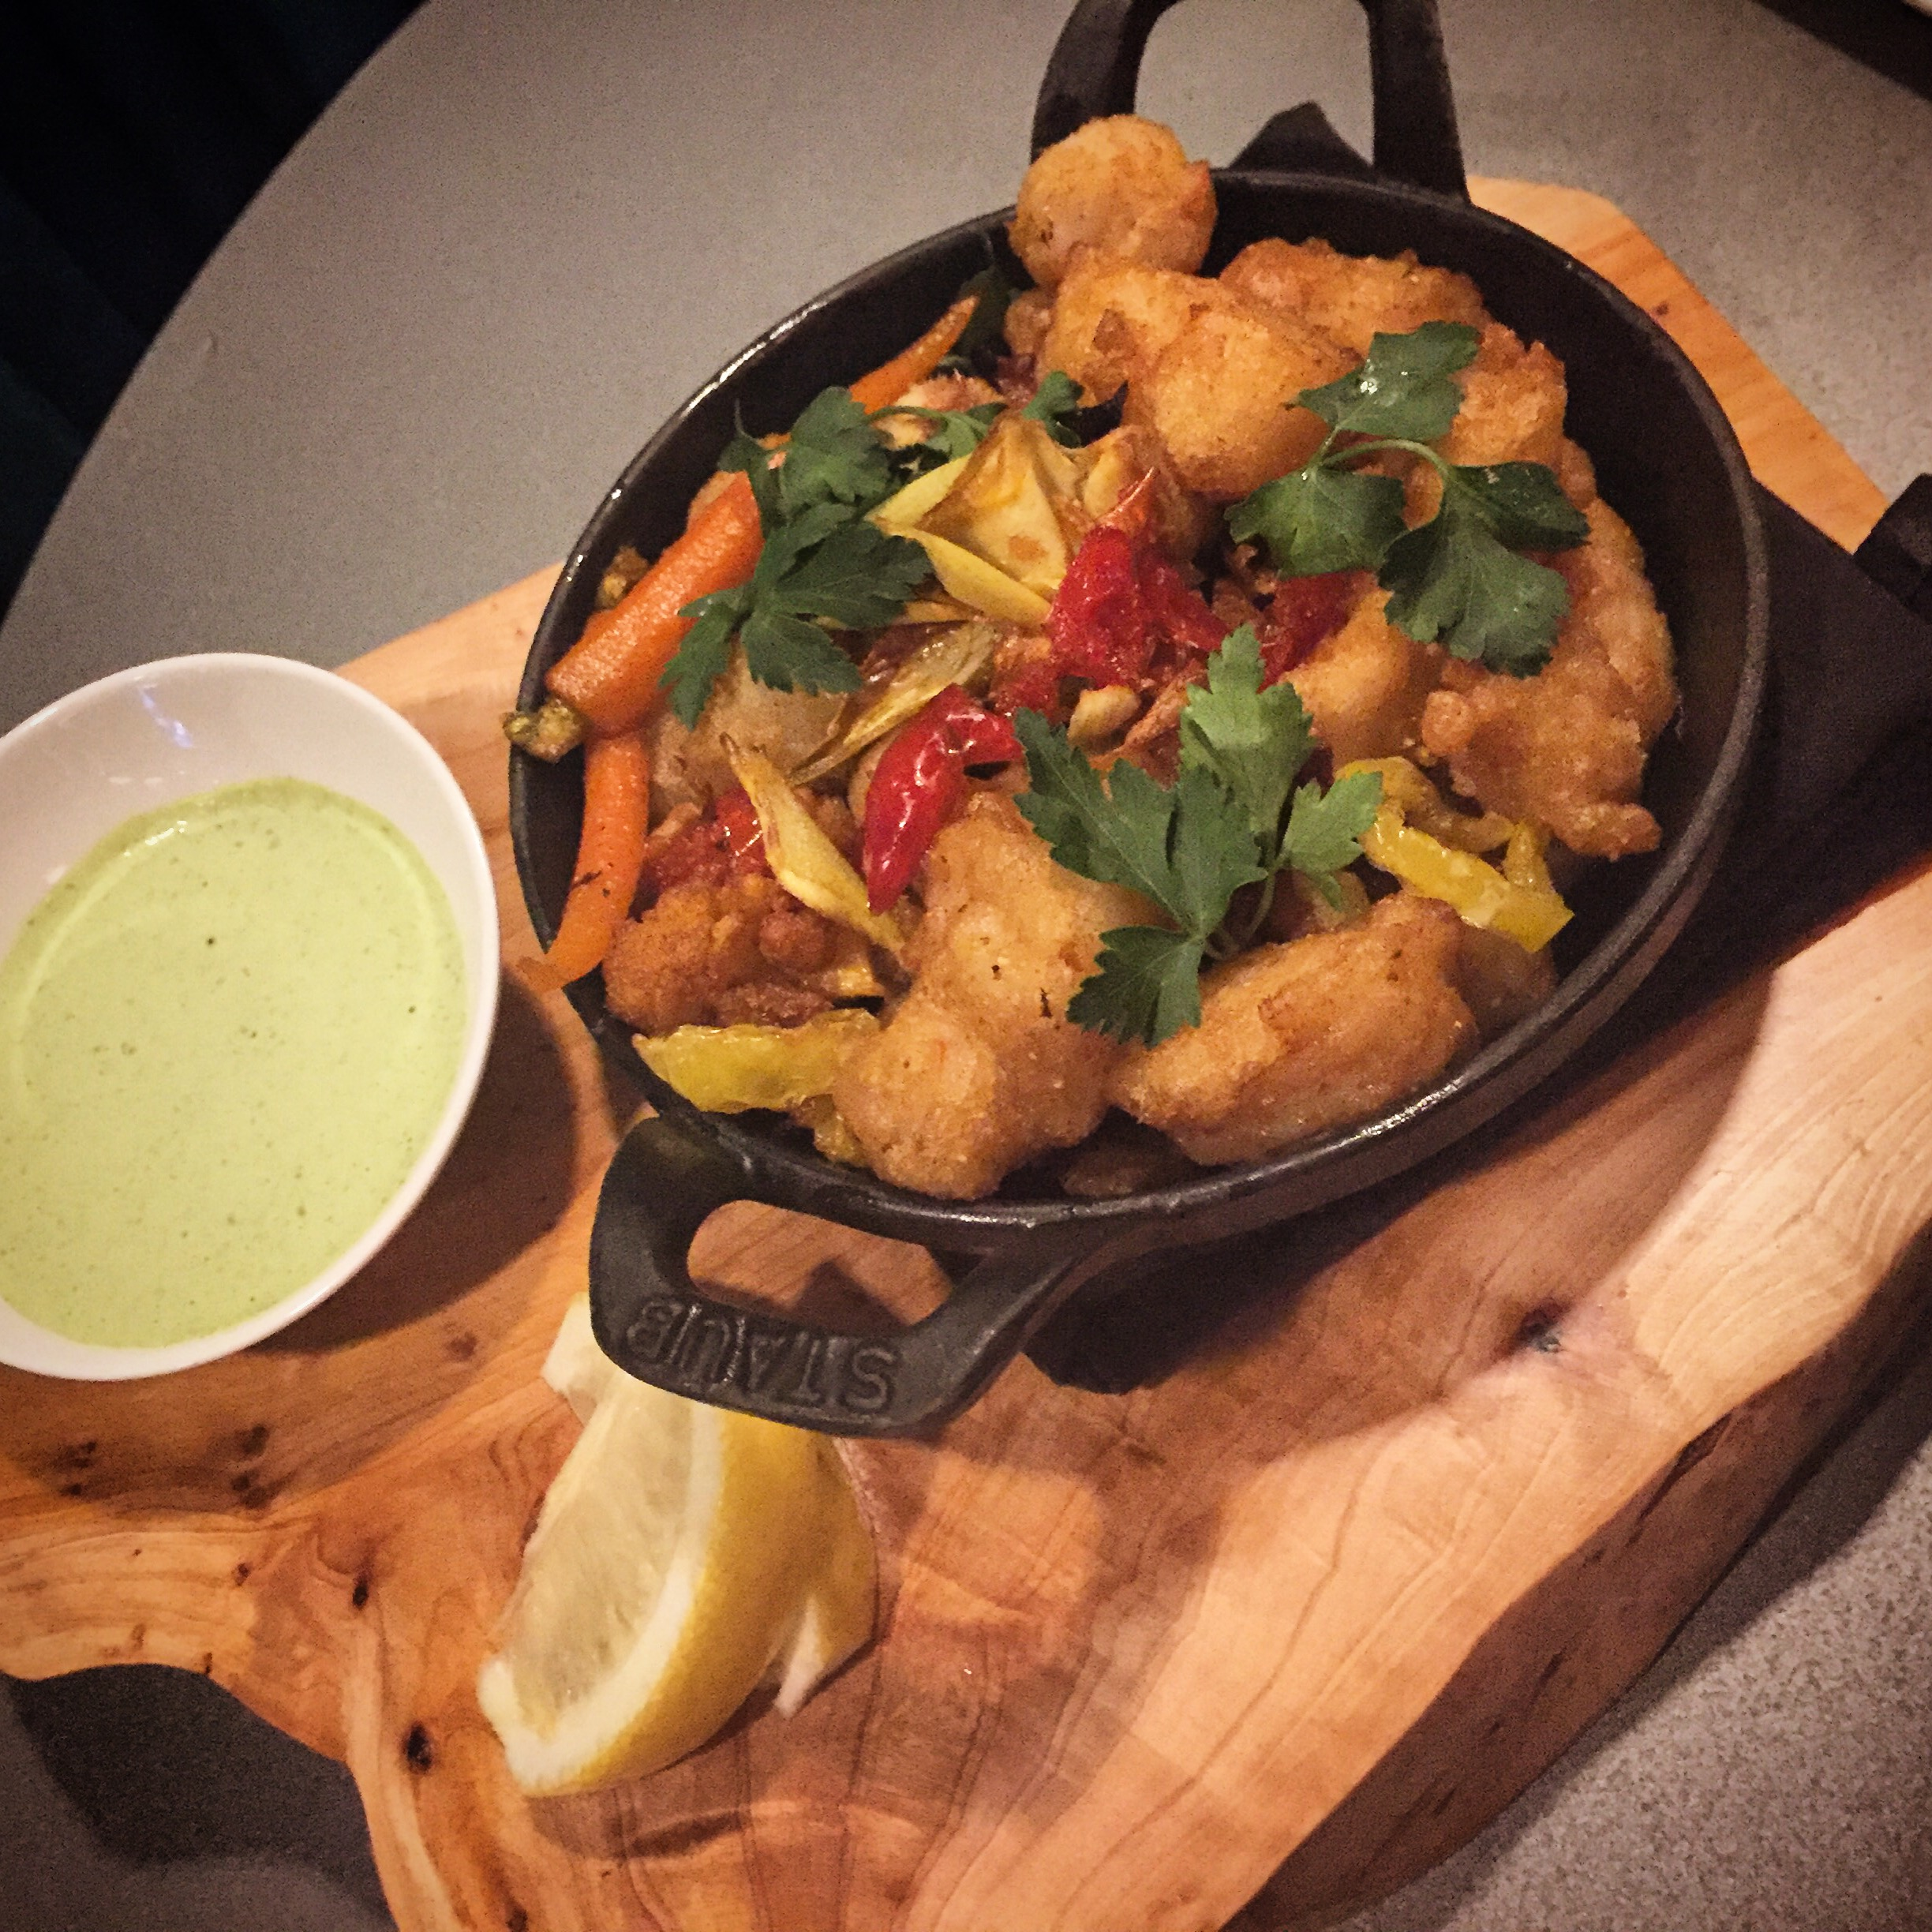 Fritto Misto - Walleye, Rock Shrimp, Scallops, Spicy Pickled Vegetables, and Green Garlic Sauce